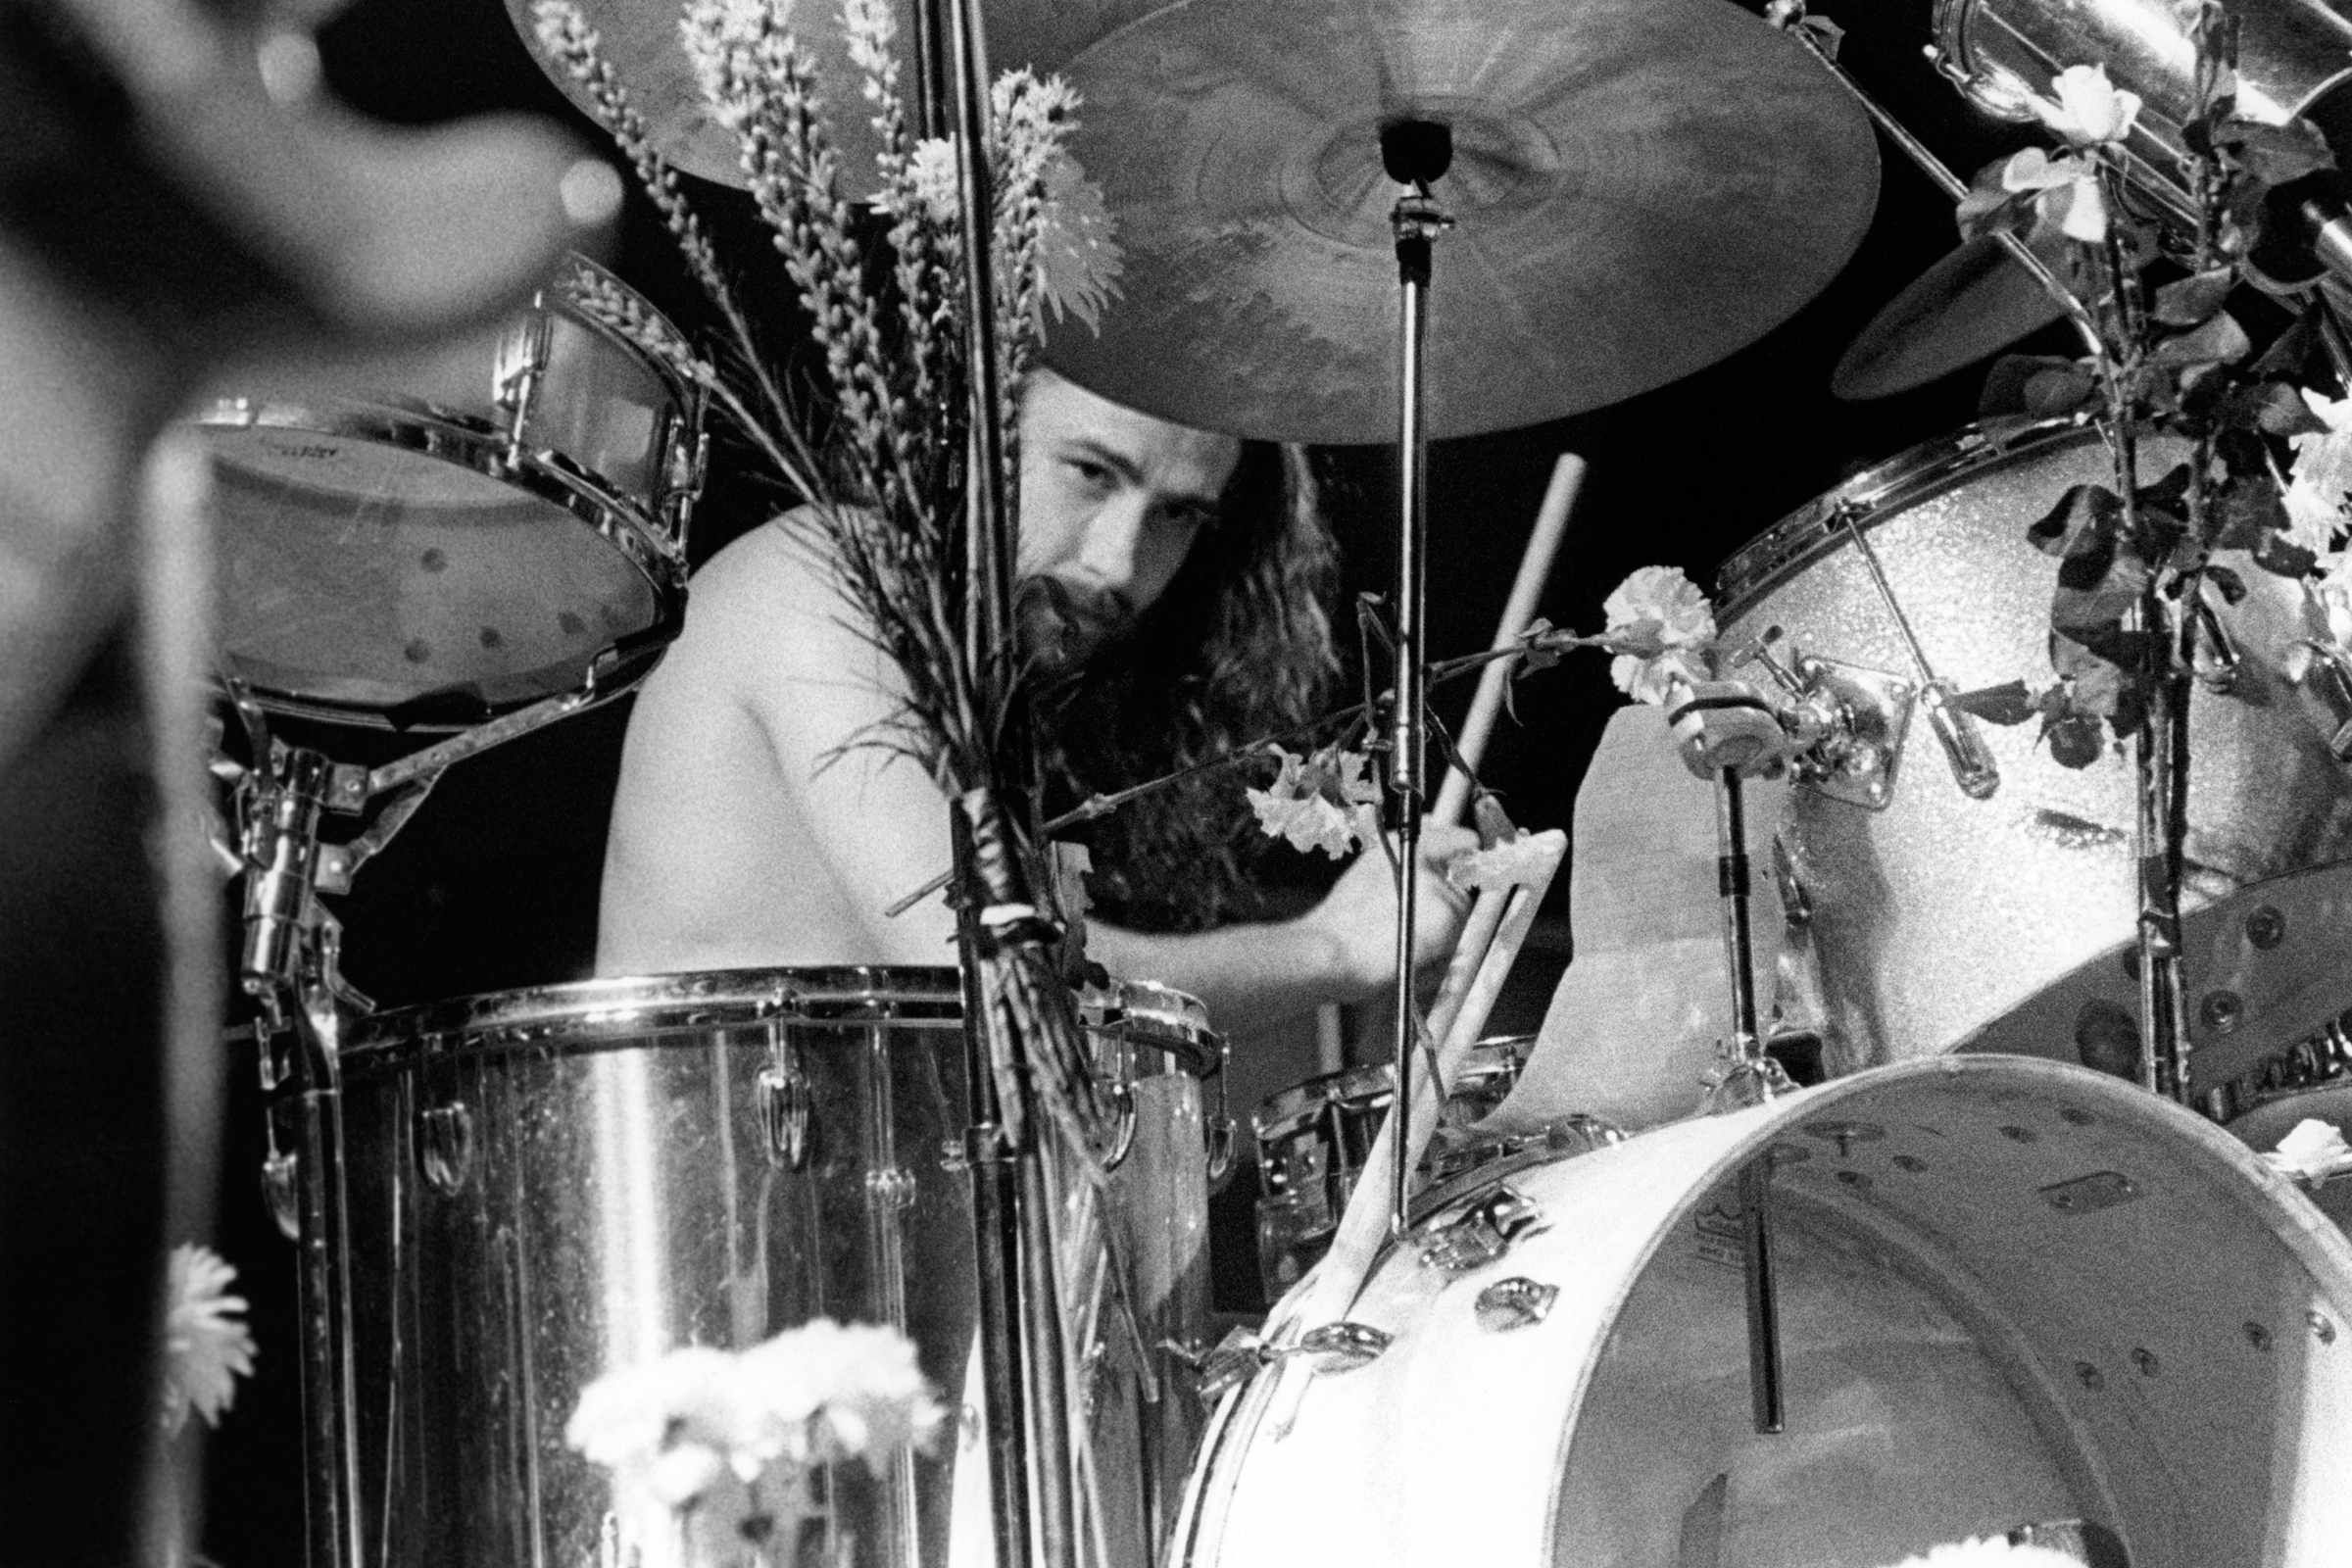 Drummer Bill Ward performing on stage at Alexandra Palace Festival, 1973.